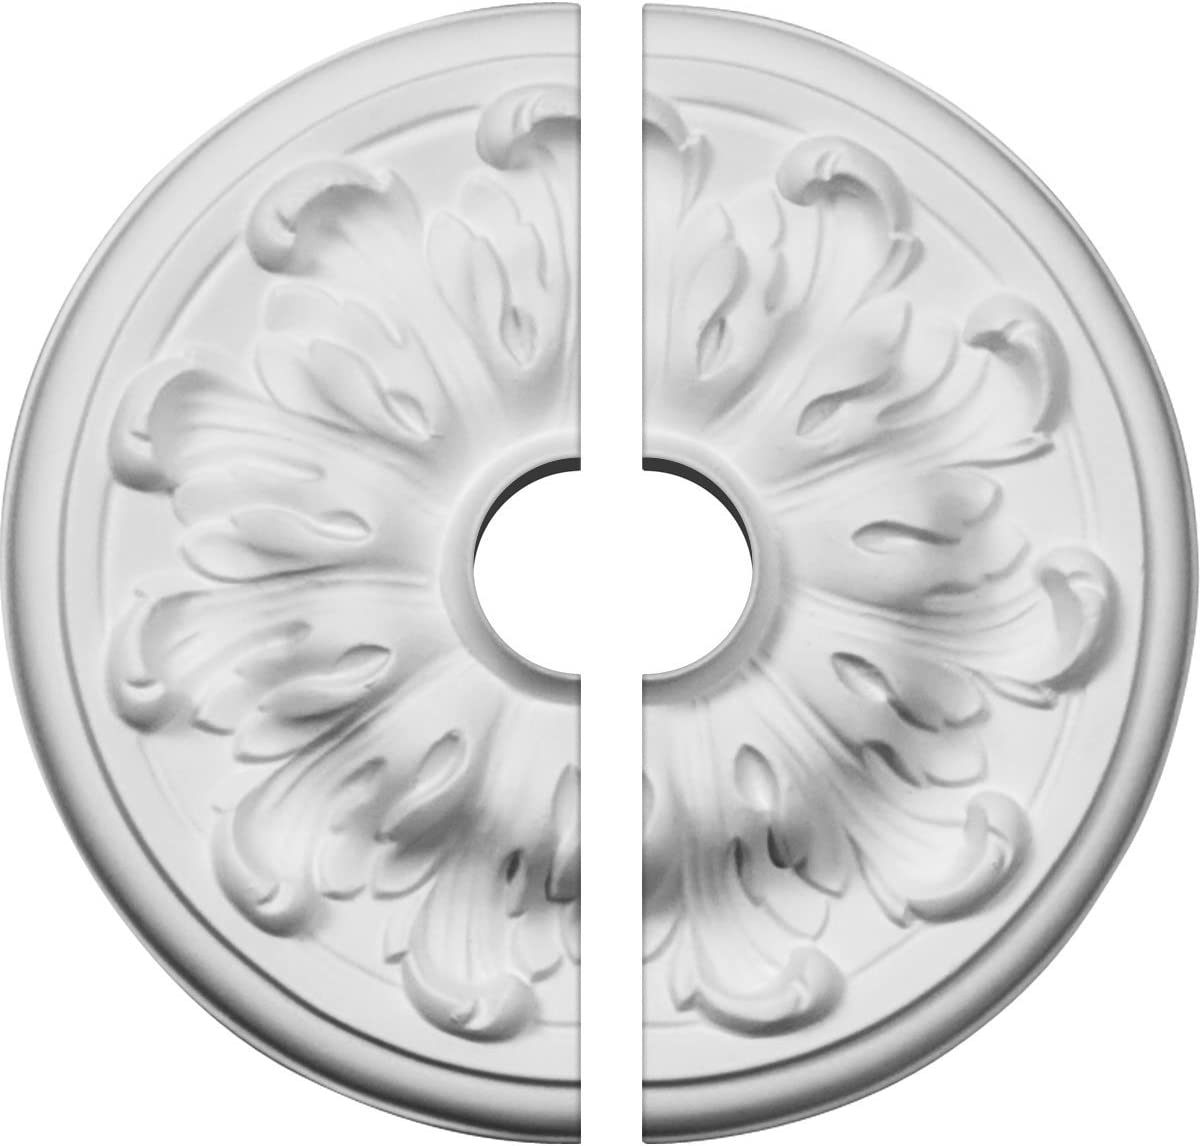 Factory Primed White Two Piece Ekena Millwork CM08MU2-01500 7 7//8OD x 1 1//2ID x 1//4P Millin Ceiling Medallion Fits Canopies up to 2 Two Piece Factory Primed White Fits Canopies up to 2